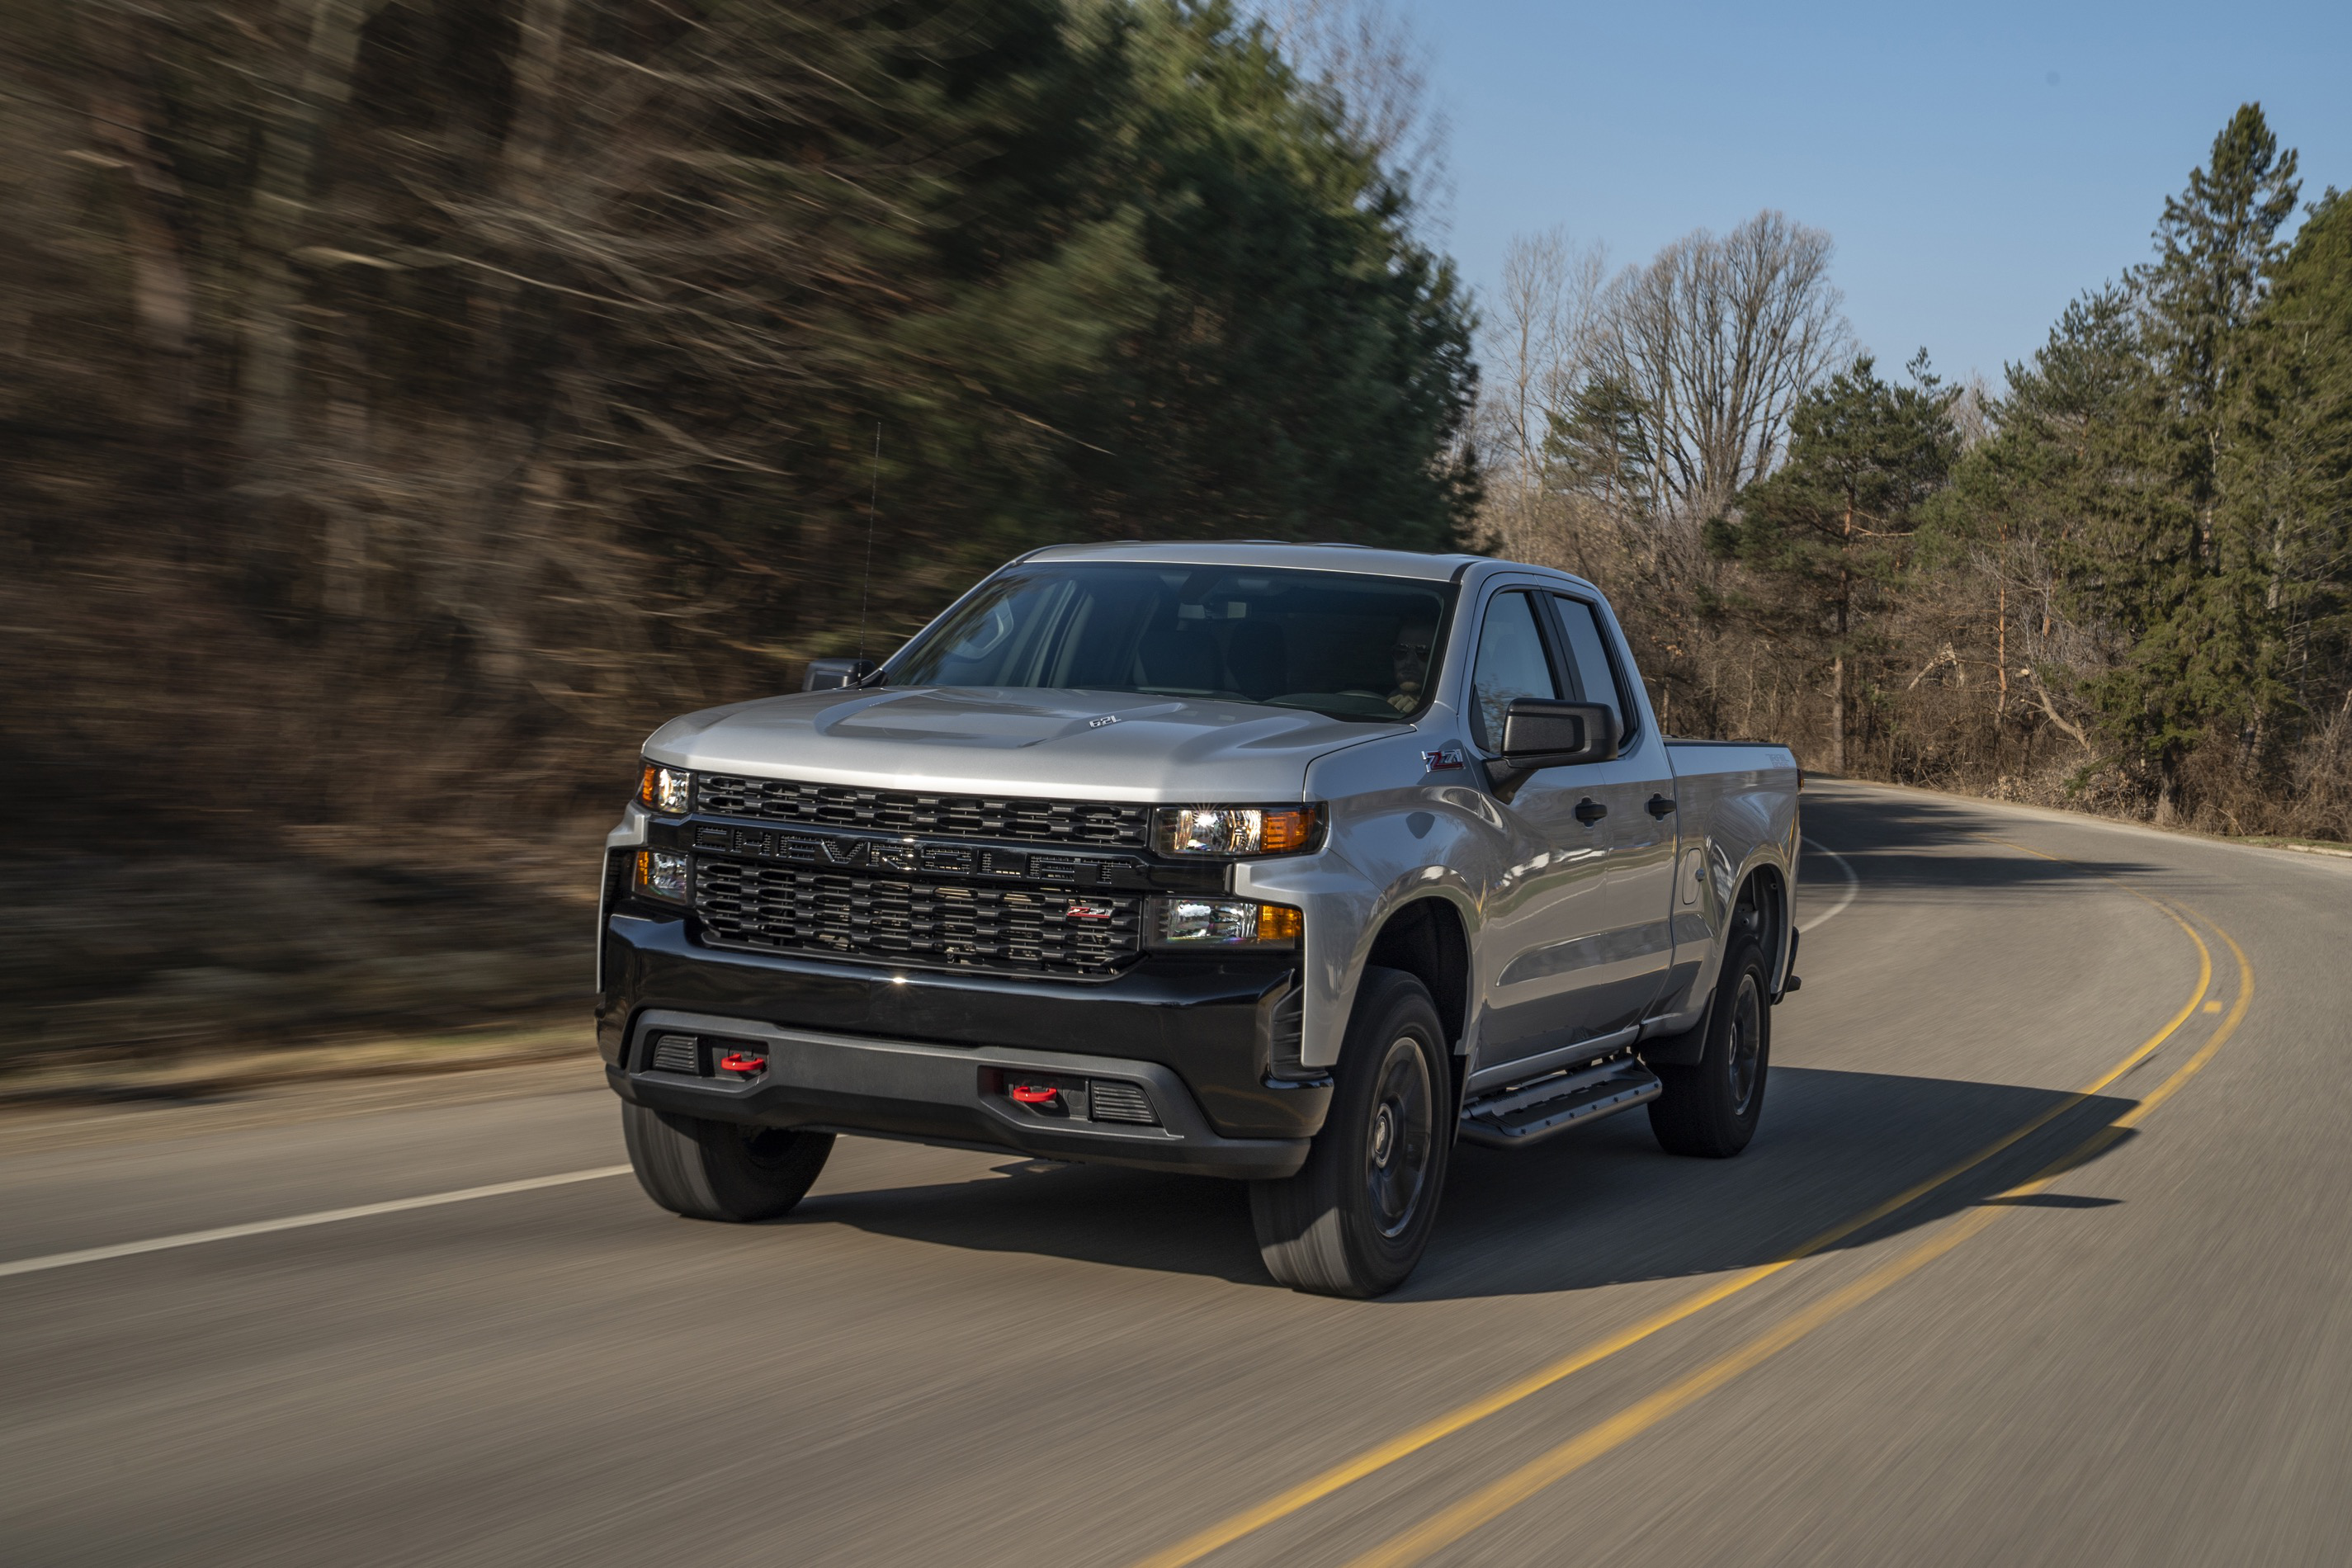 2020 Chevy Silverado 1500 cranks up the power & gets best ...